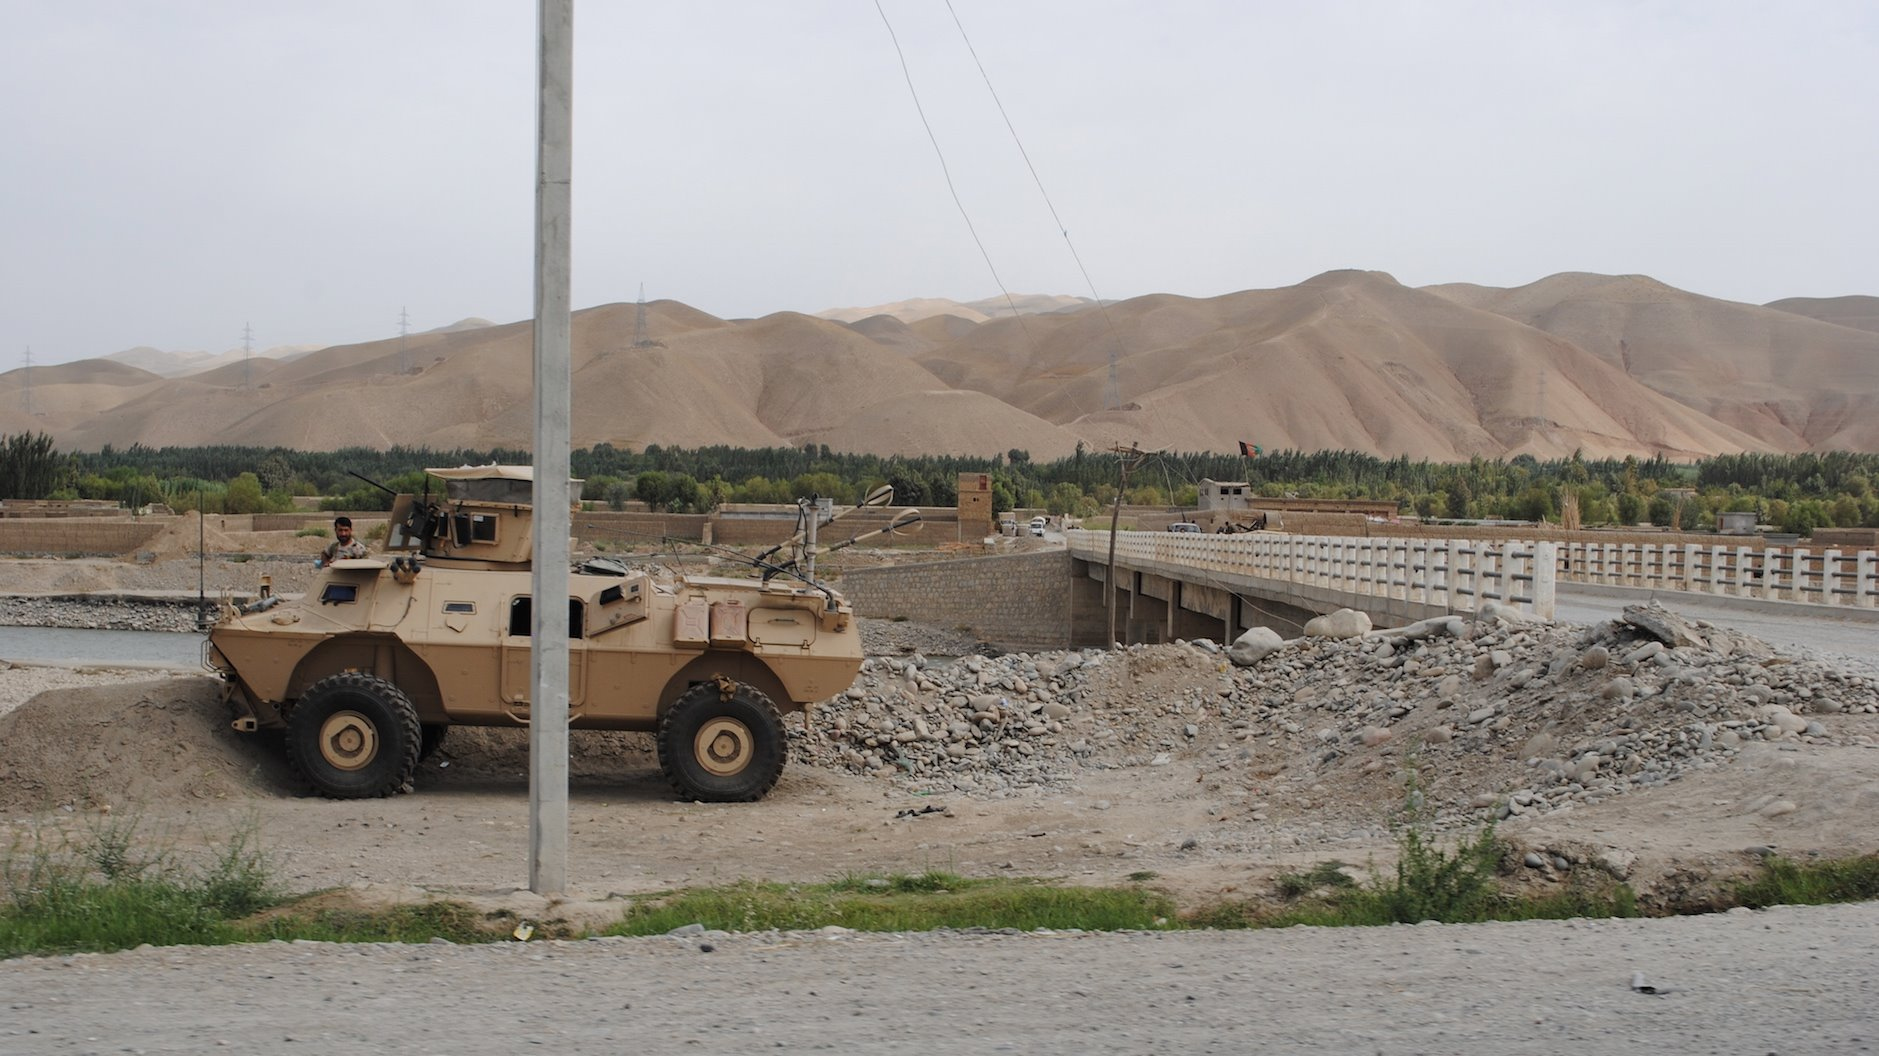 The Taliban has taken territory in Khanabad district in the Afghanistan province of Kunduz on the other side of a bridge pictured here in August 2015